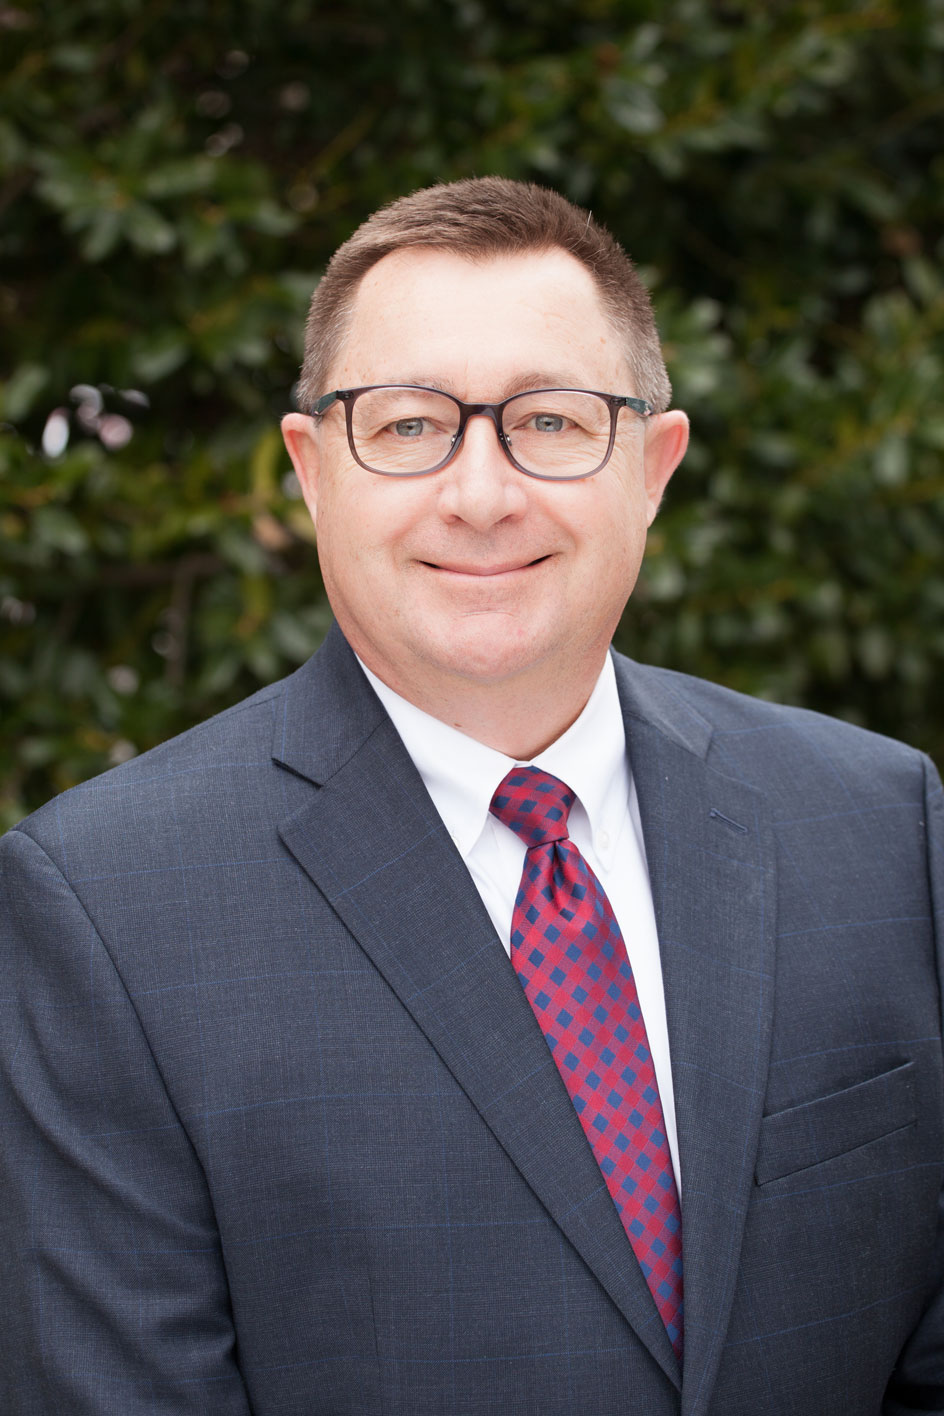 Photo of David Liles, Estate Administration specialist